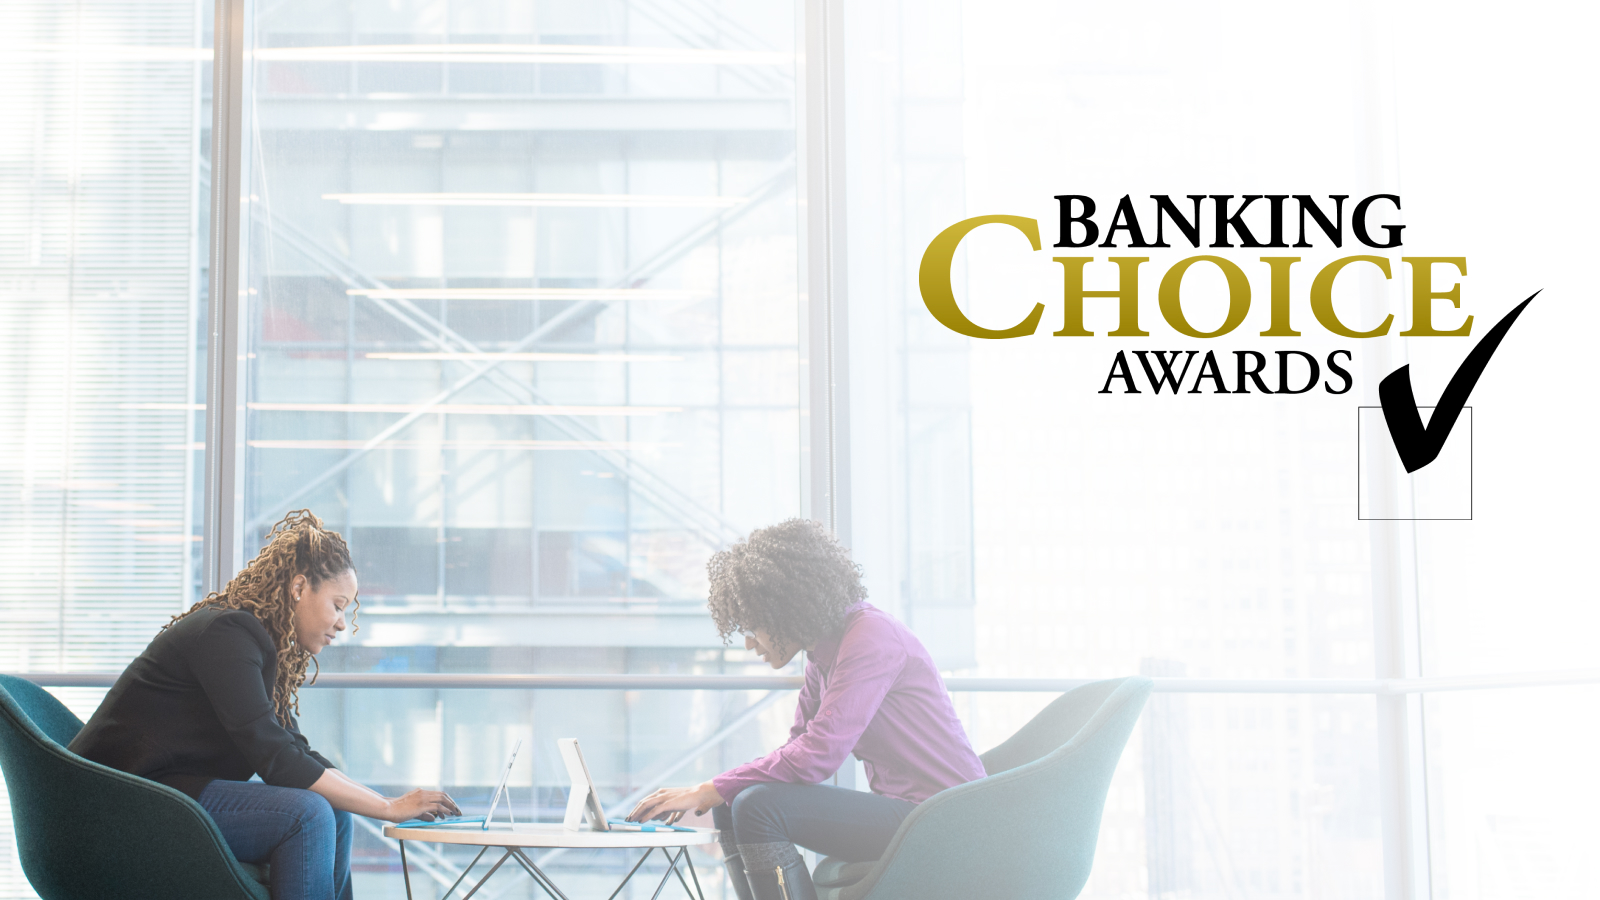 Banking Choice logo above two women deliberating over computers